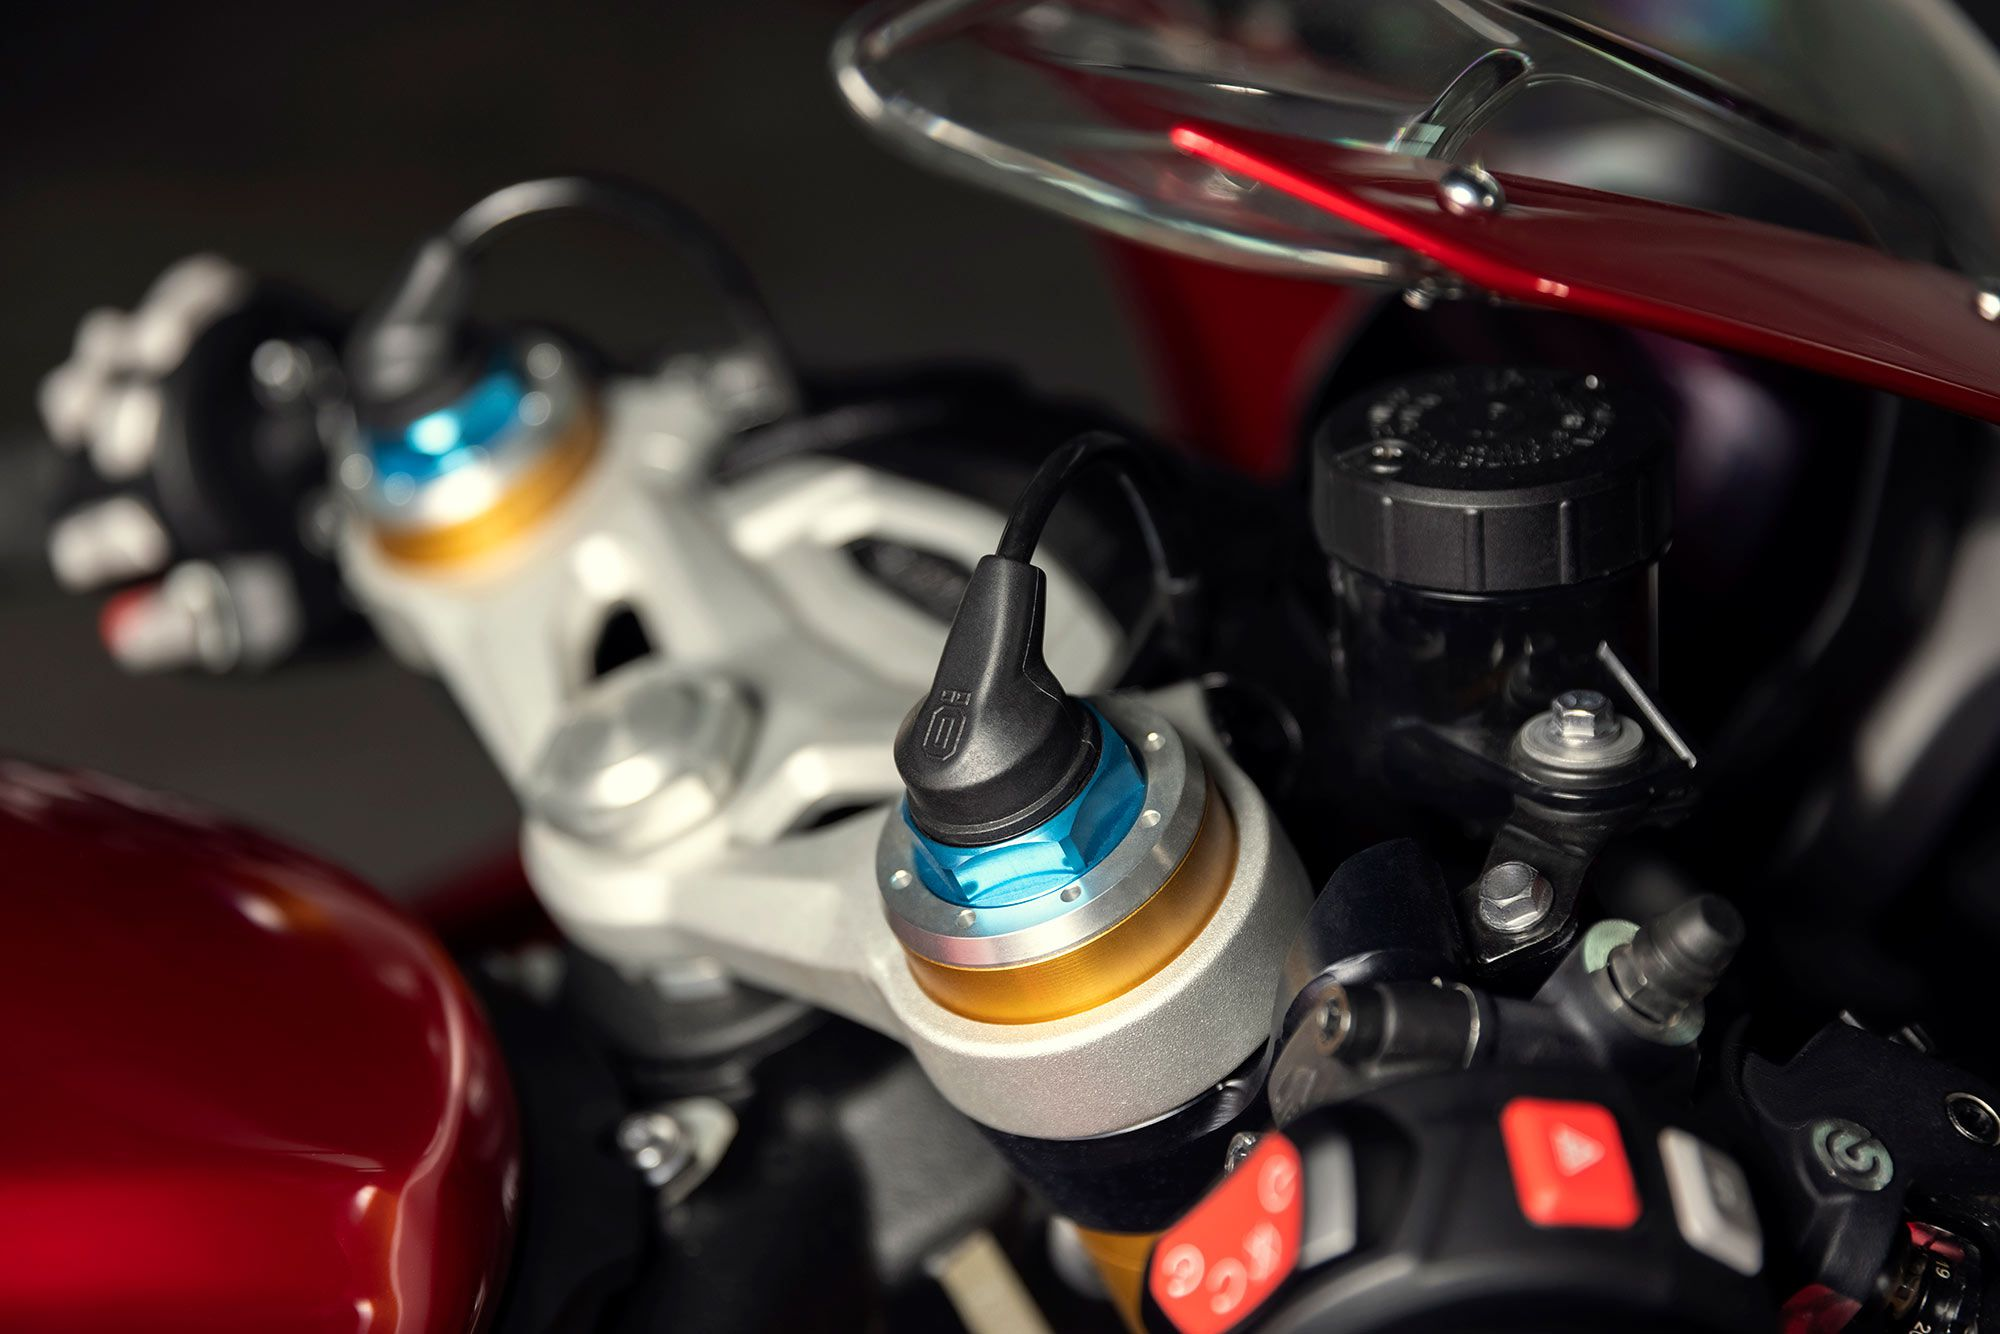 Front and rear Öhlins semi-active suspension on the RR are a step up from the Speed Triple RS' manually adjustable units.